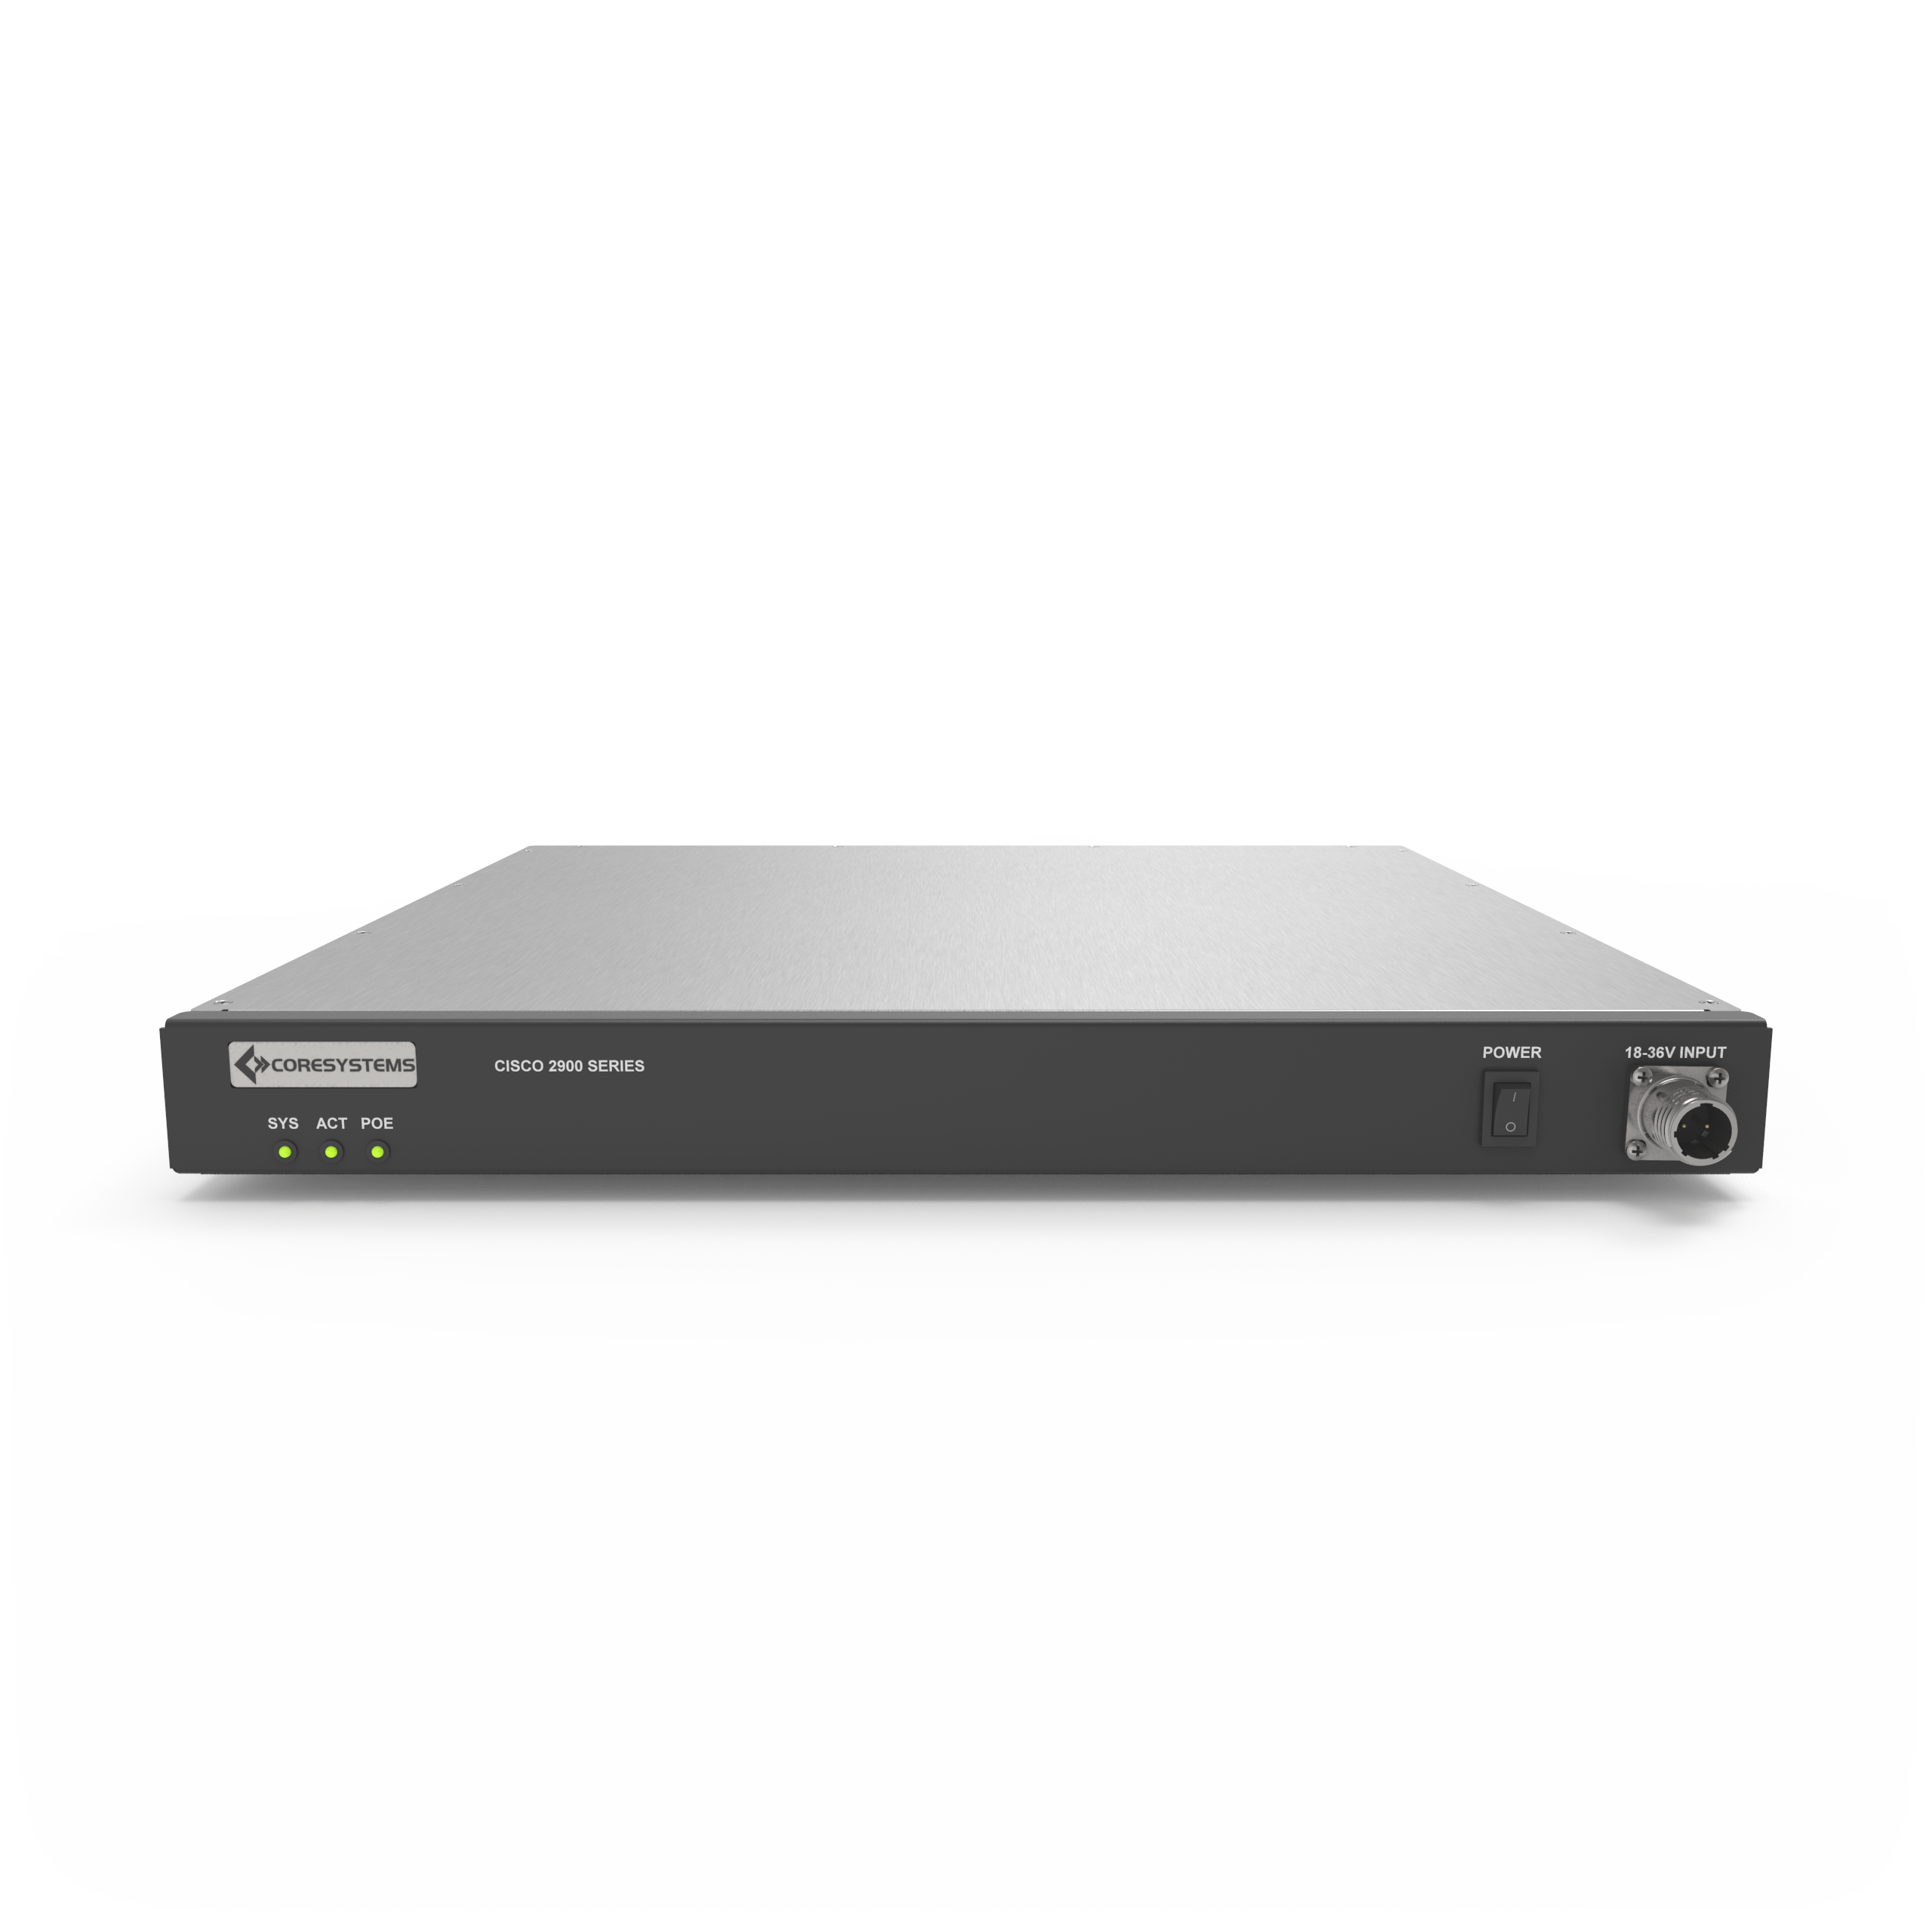 Rugged Core Systems 2901 Cisco Router-1